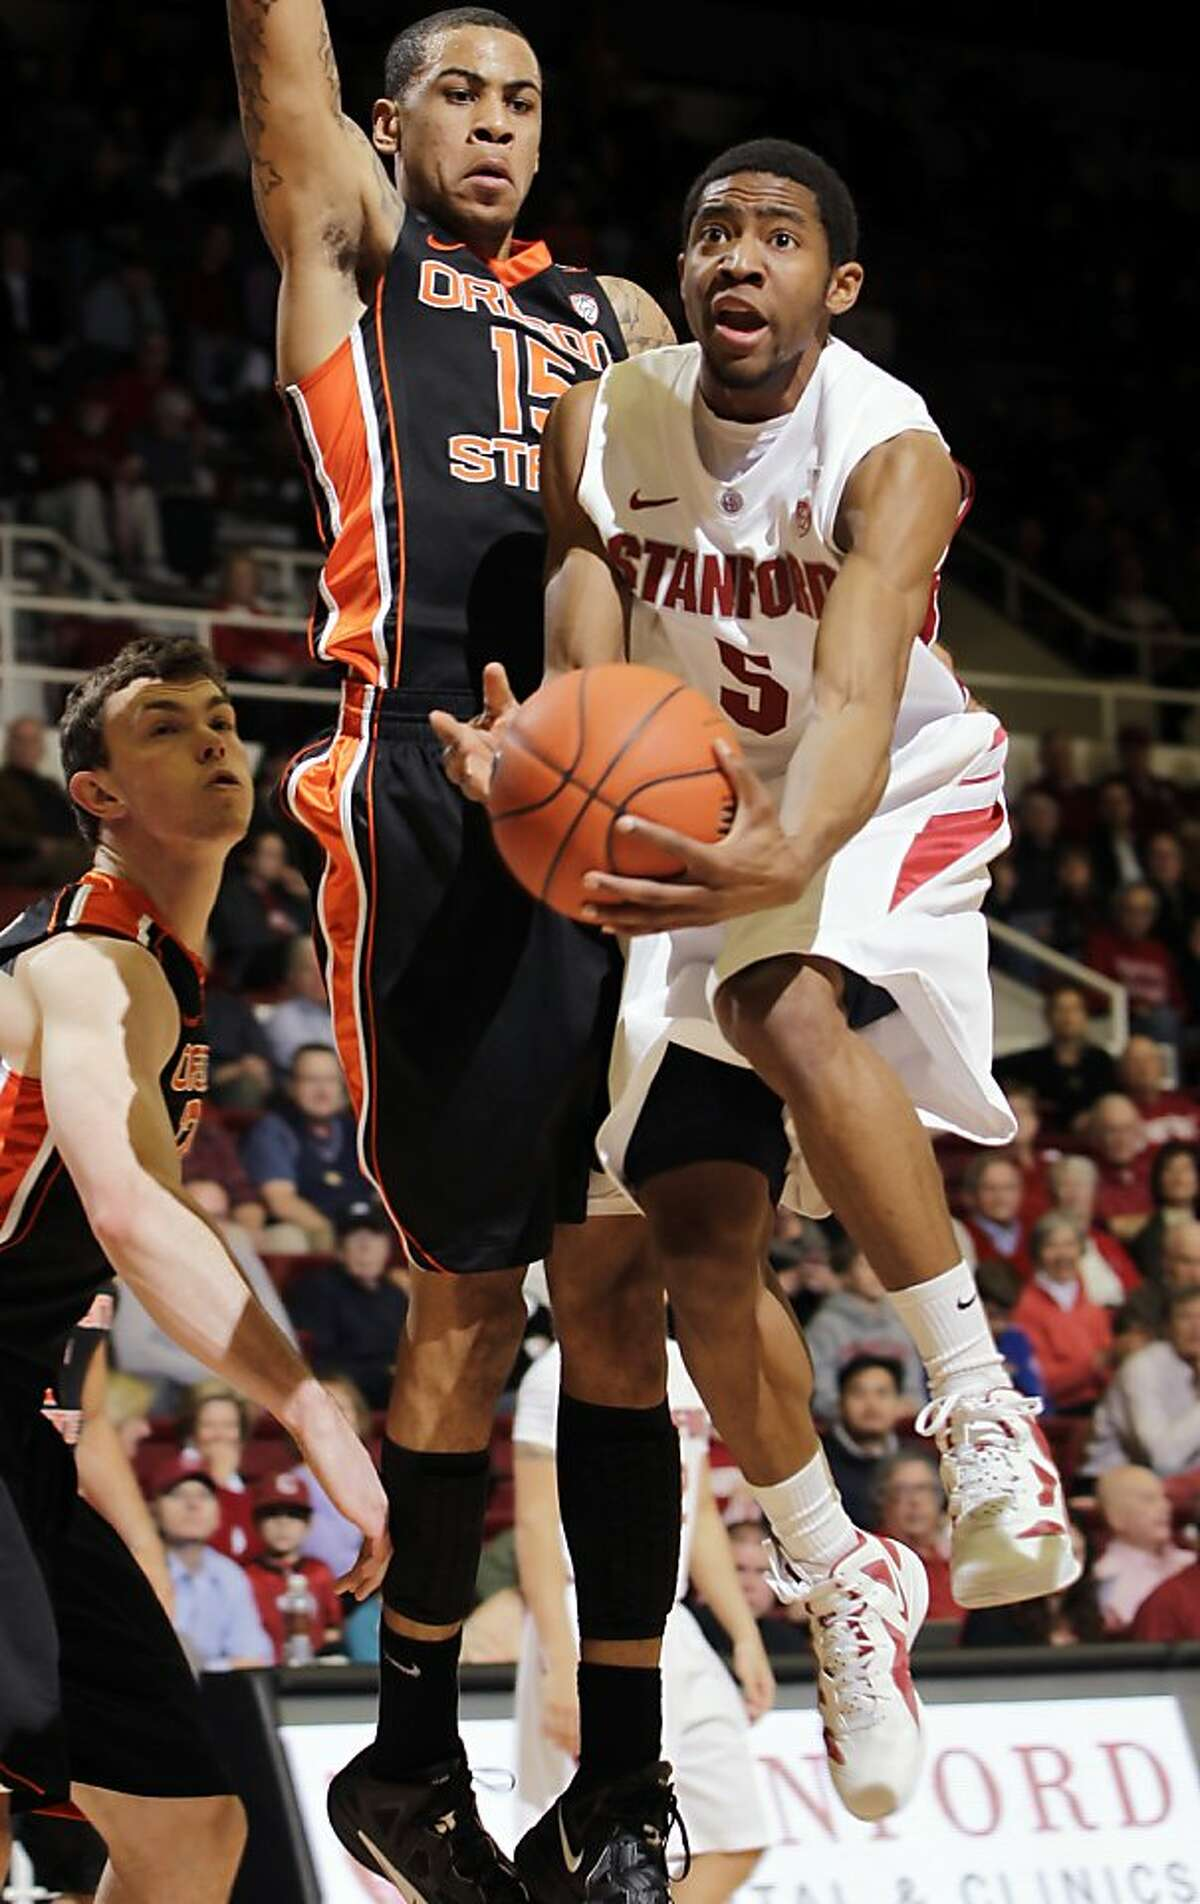 Stanford guard Chasson Randle (5) shoots to score in front of Oregon State forward Eric Moreland (15) during the first half of an NCAA college basketball game in Stanford, Calif., Thursday, Feb. 16, 2012.